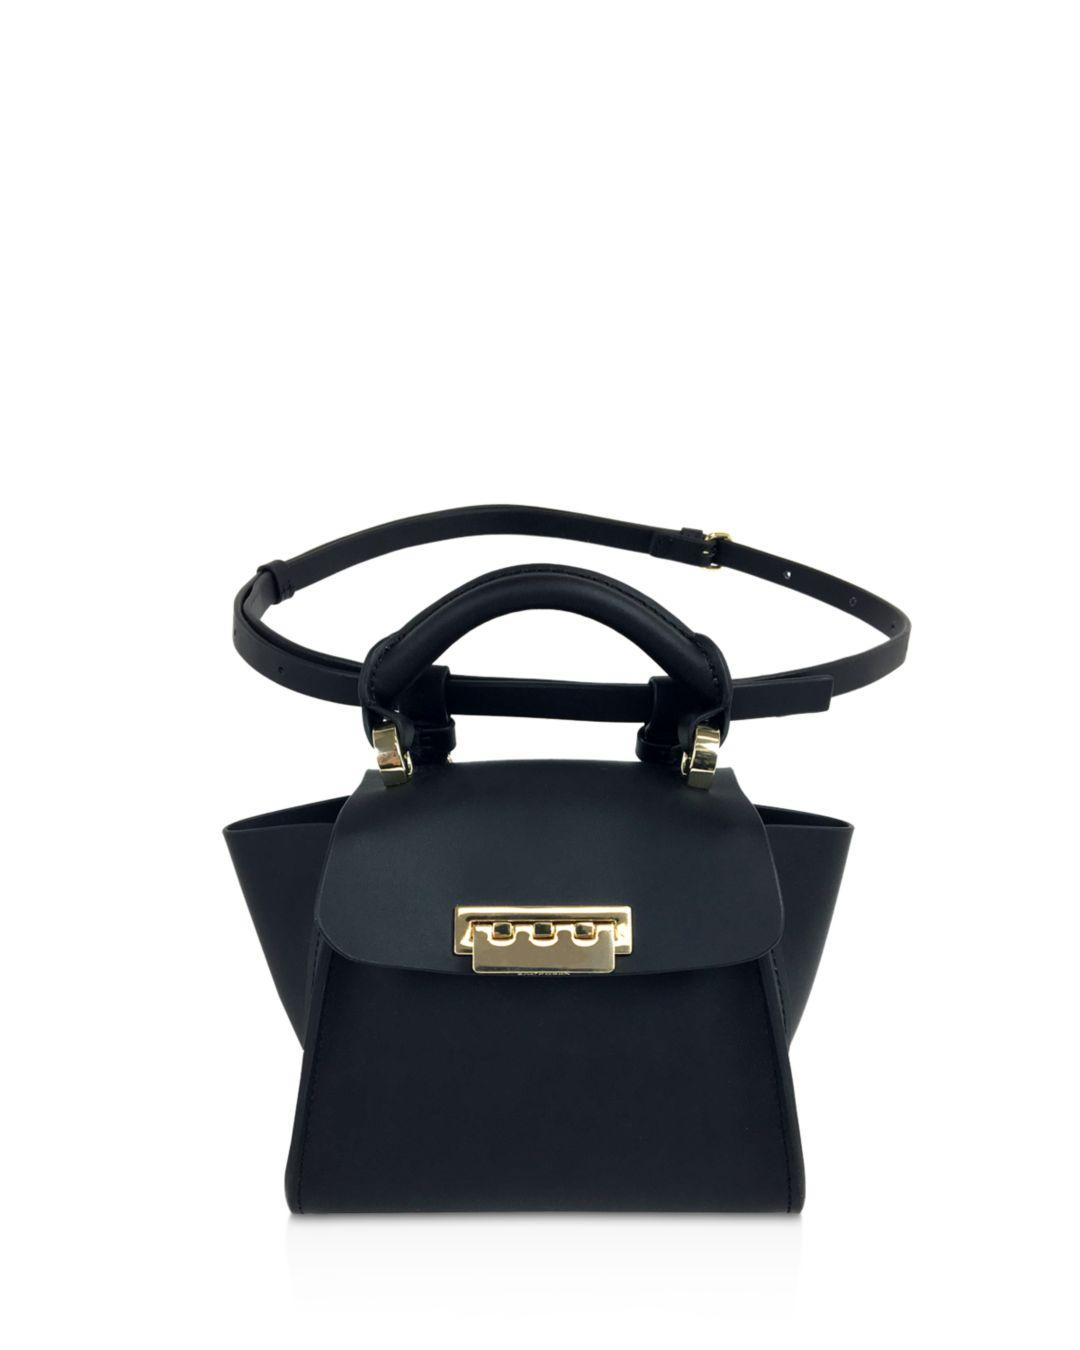 66b45a1a07d3 Lyst - Zac Zac Posen Eartha Iconic Convertible Mini Leather Top Handle Belt  Bag in Black